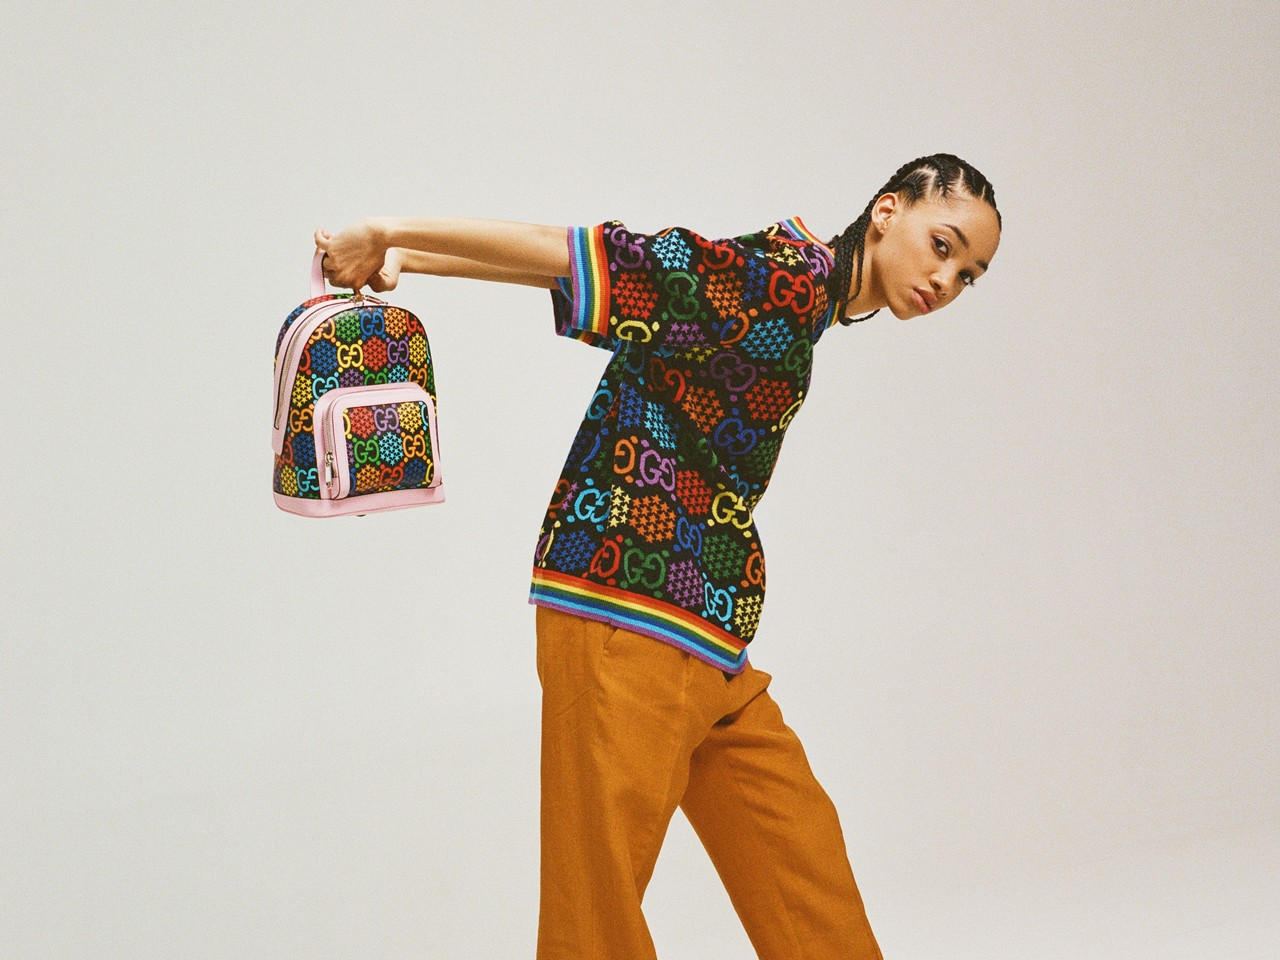 Gucci GG Psychedelic Collection GG logo men's and women's ready-to-wear handbags luggage shoes small leather goods accessories watches and a range of fine jewelry Gucci Pin 70s psychedelia surreal imagery wide color spectrums hazy images energy impact